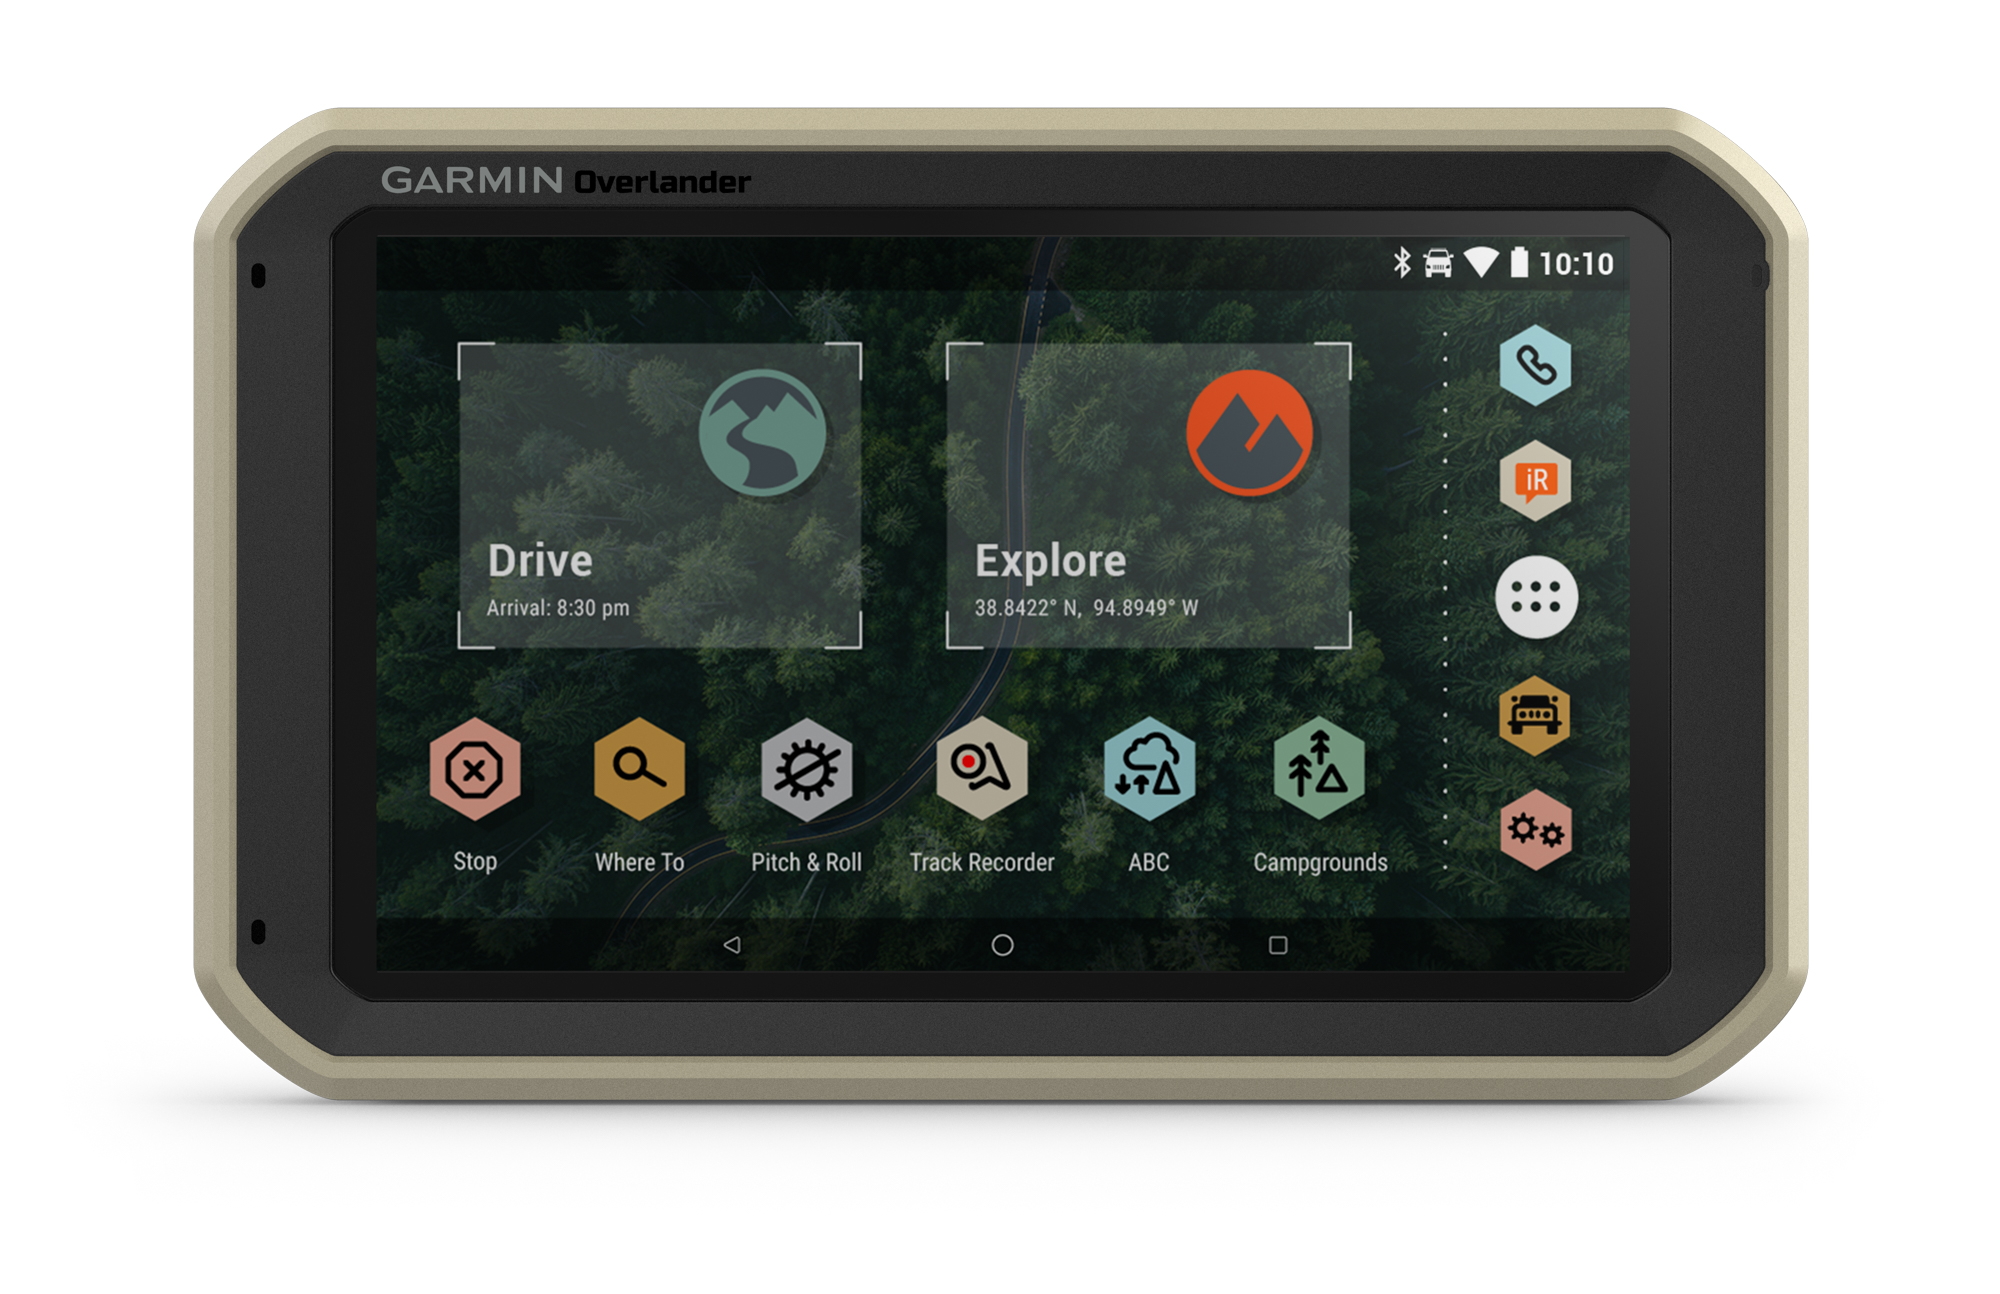 Garmin's Overlander GPS Can Replace All of Your Off-Road Apps